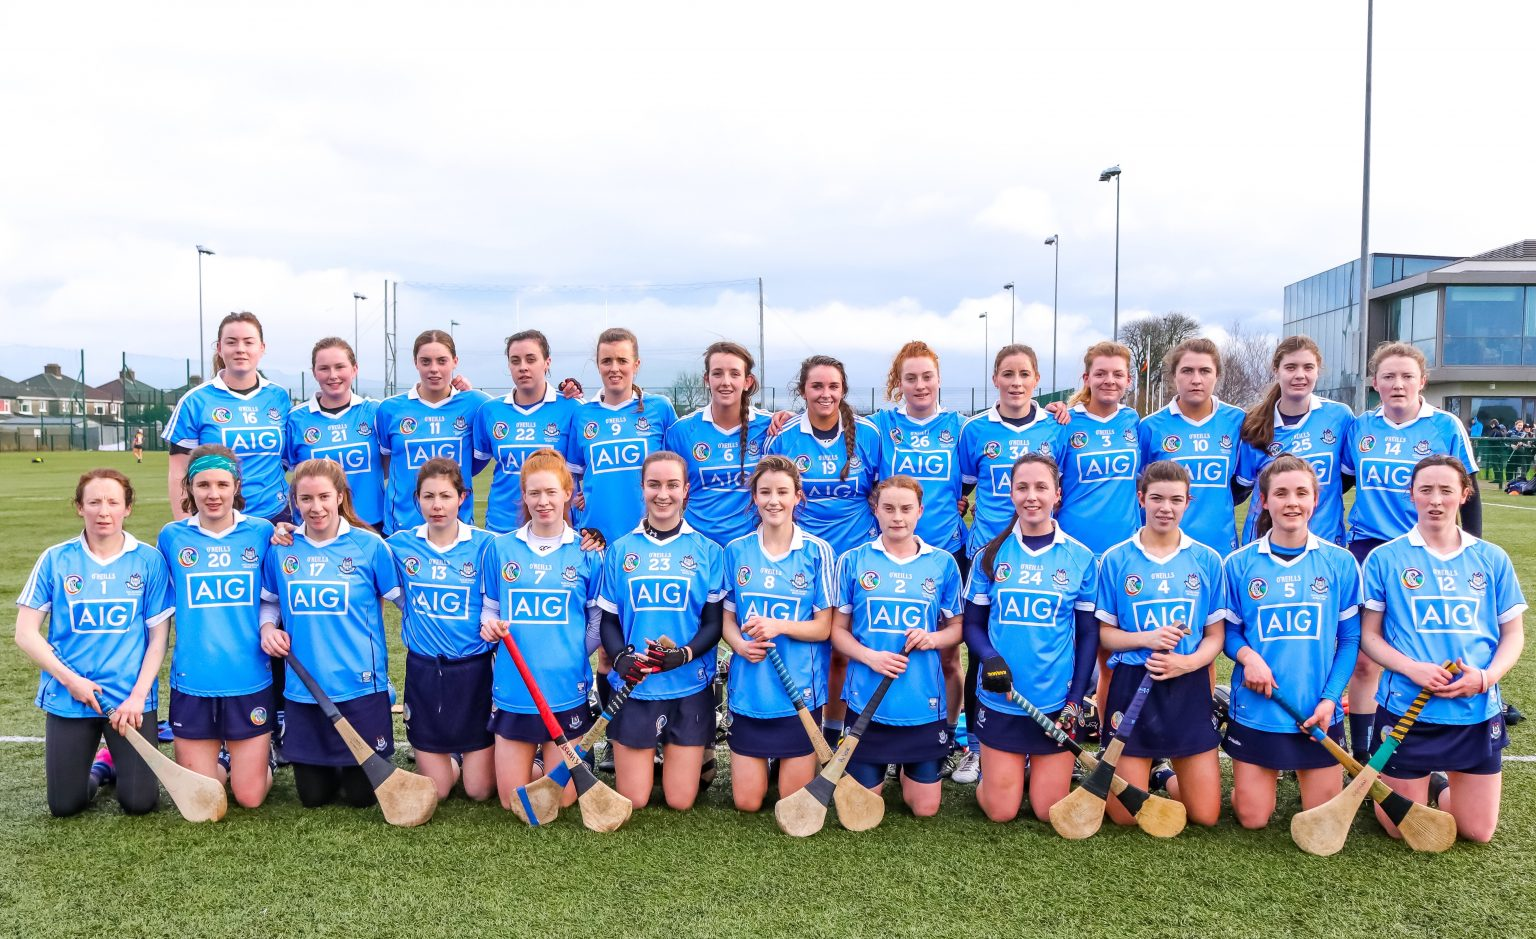 Dublin Senior Camogie Squad Before Their Littlewoods Ireland Camogie League Clash With Kilkenny